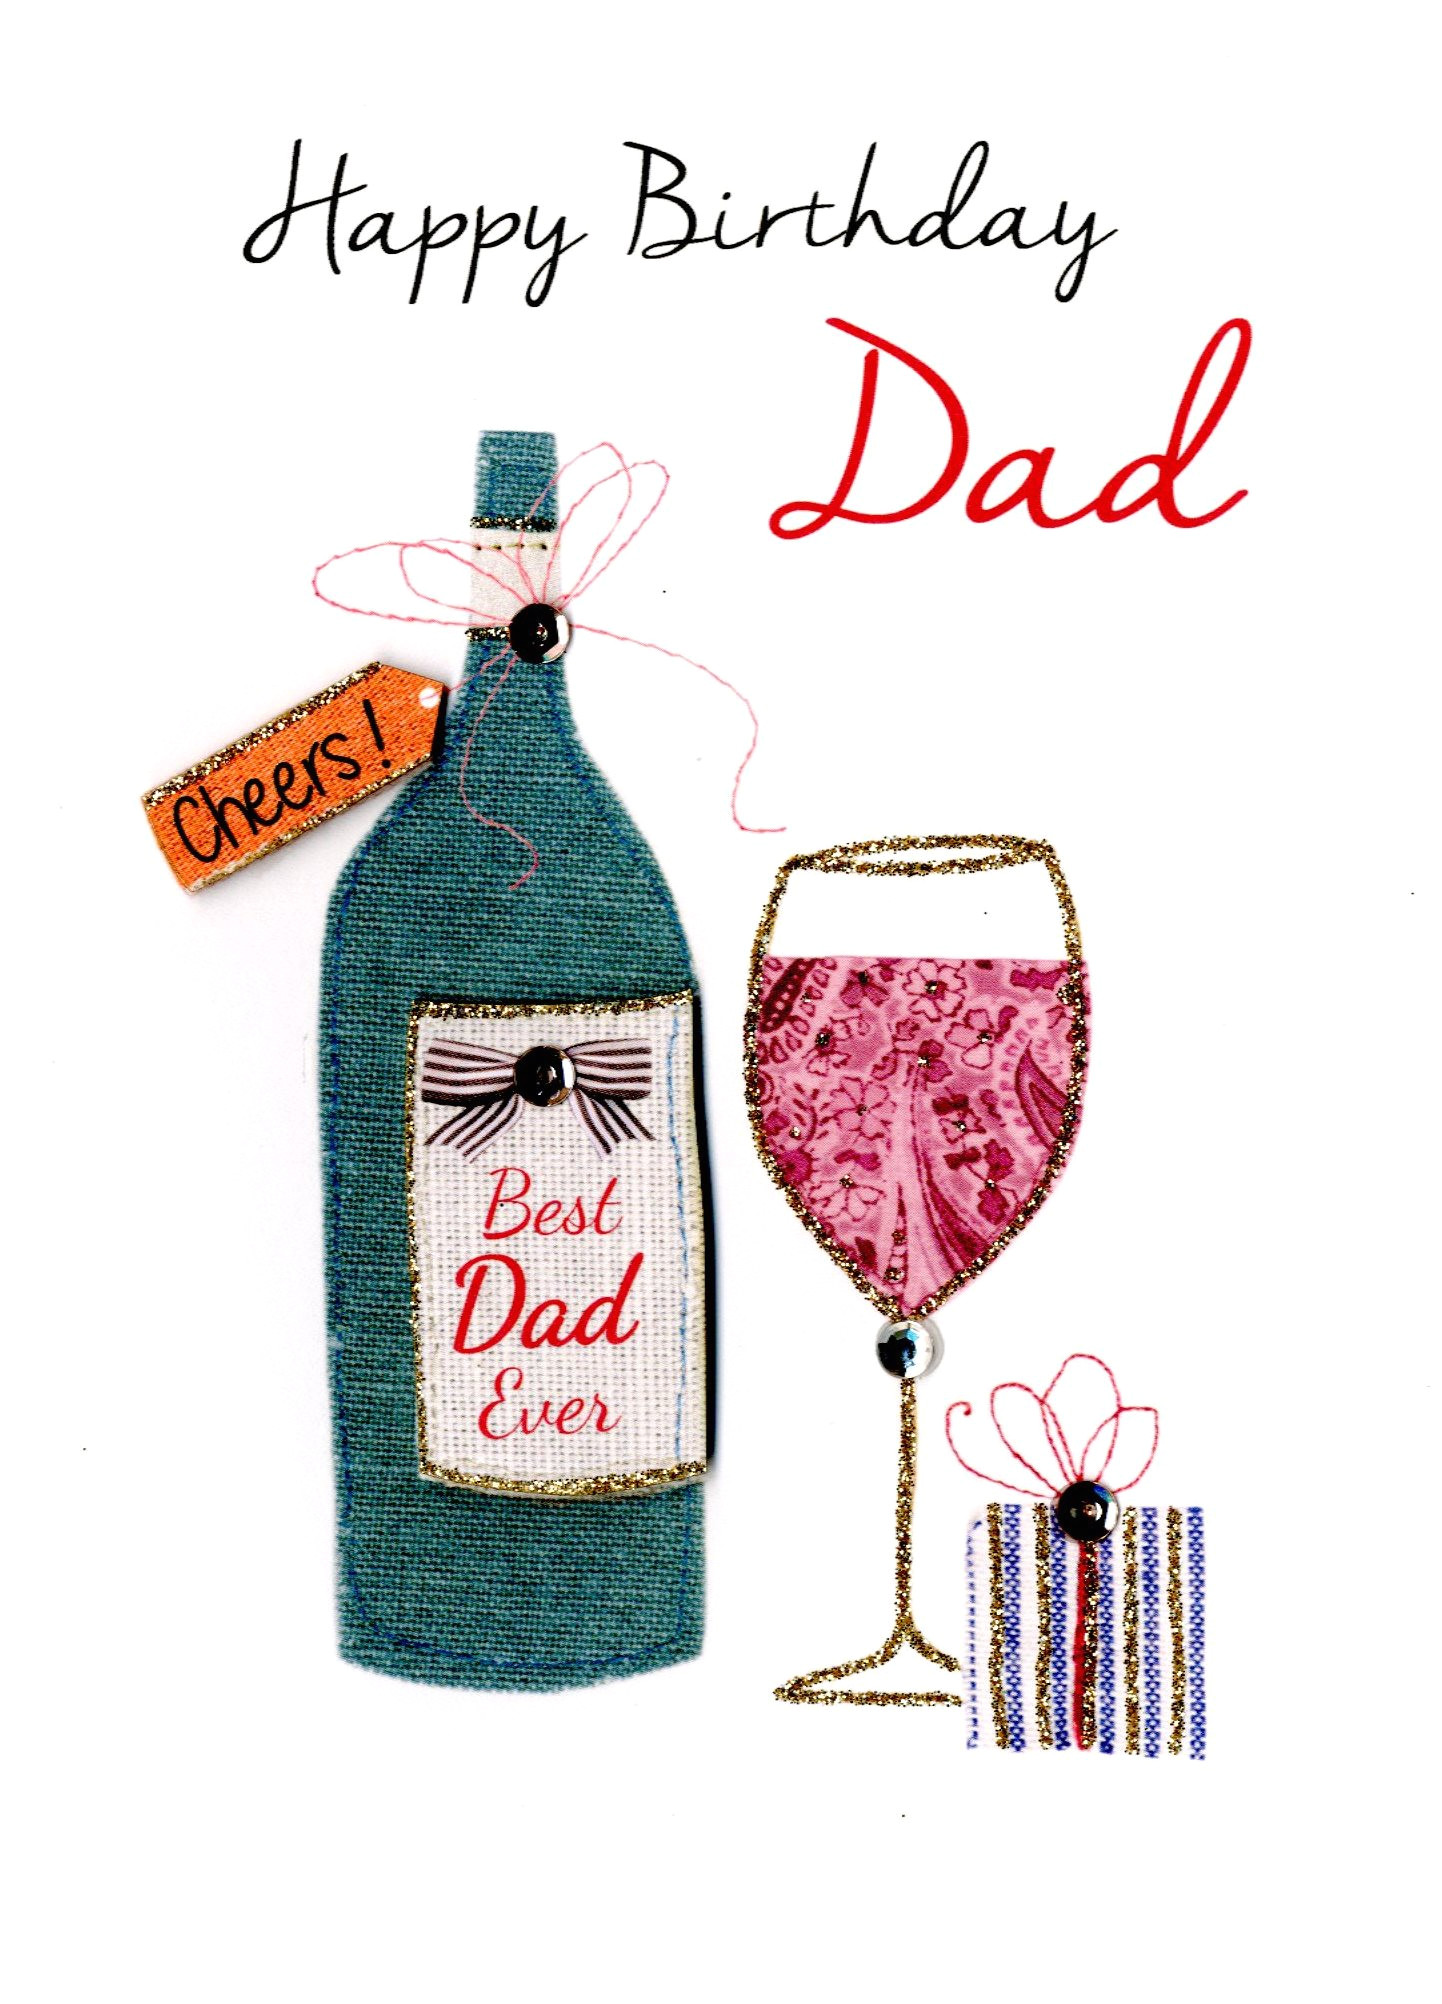 kcsnjt072 best dad ever happy birthday greeting card second nature just to say cards